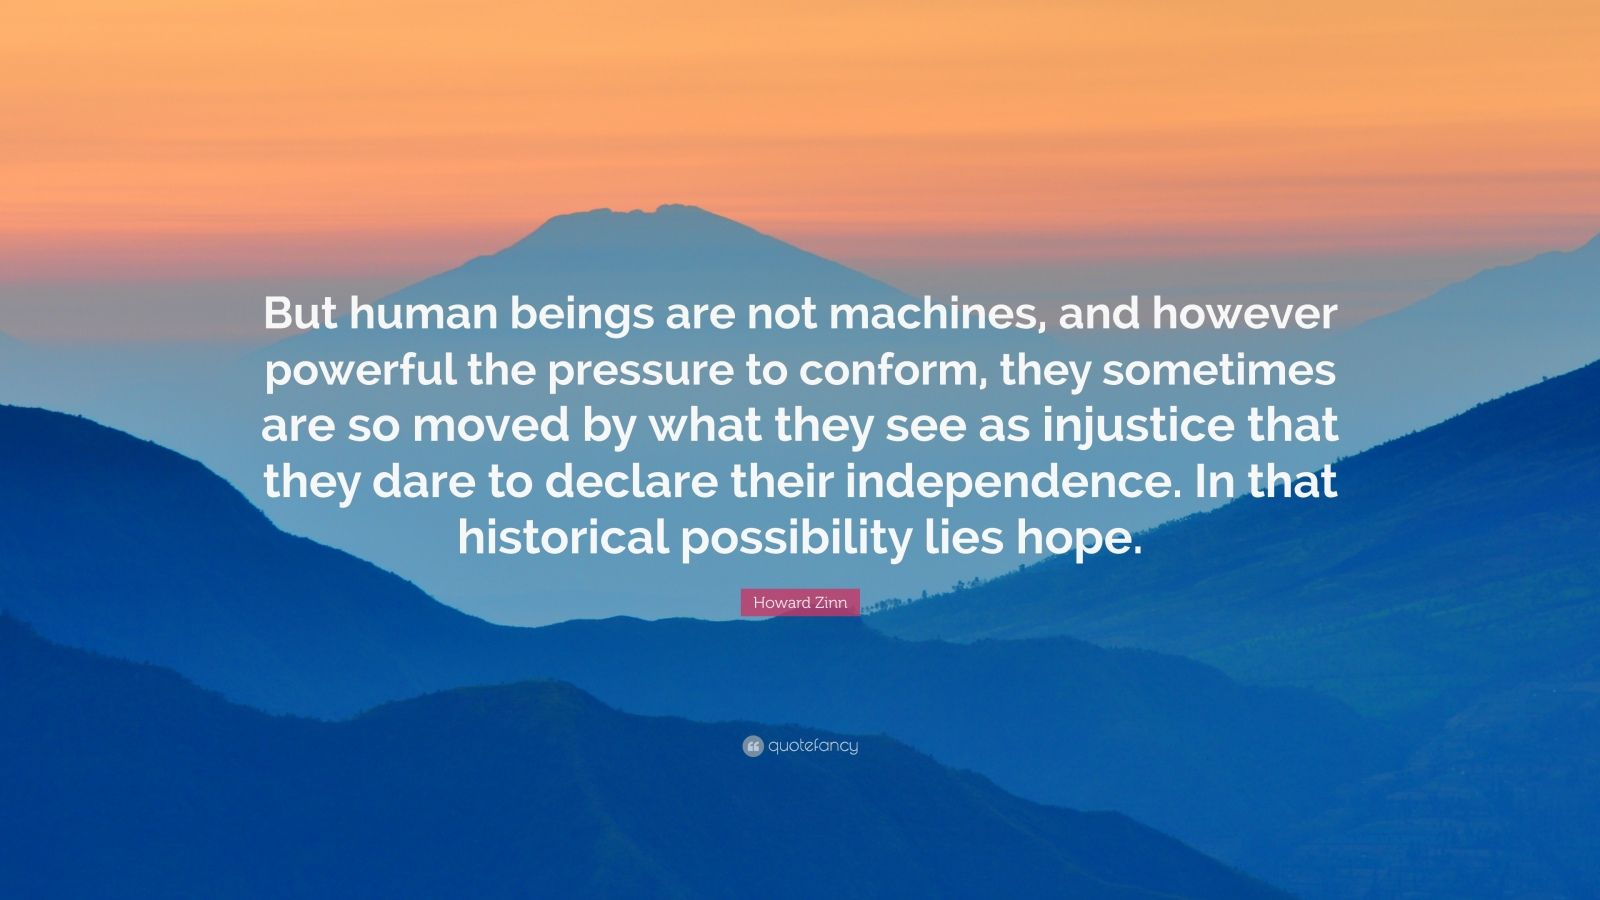 """Howard Zinn Quote: """"But human beings are not machines, and however powerful the pressure to conform, they sometimes are so moved by what they see as injustice that they dare to declare their independence. In that historical possibility lies hope."""""""